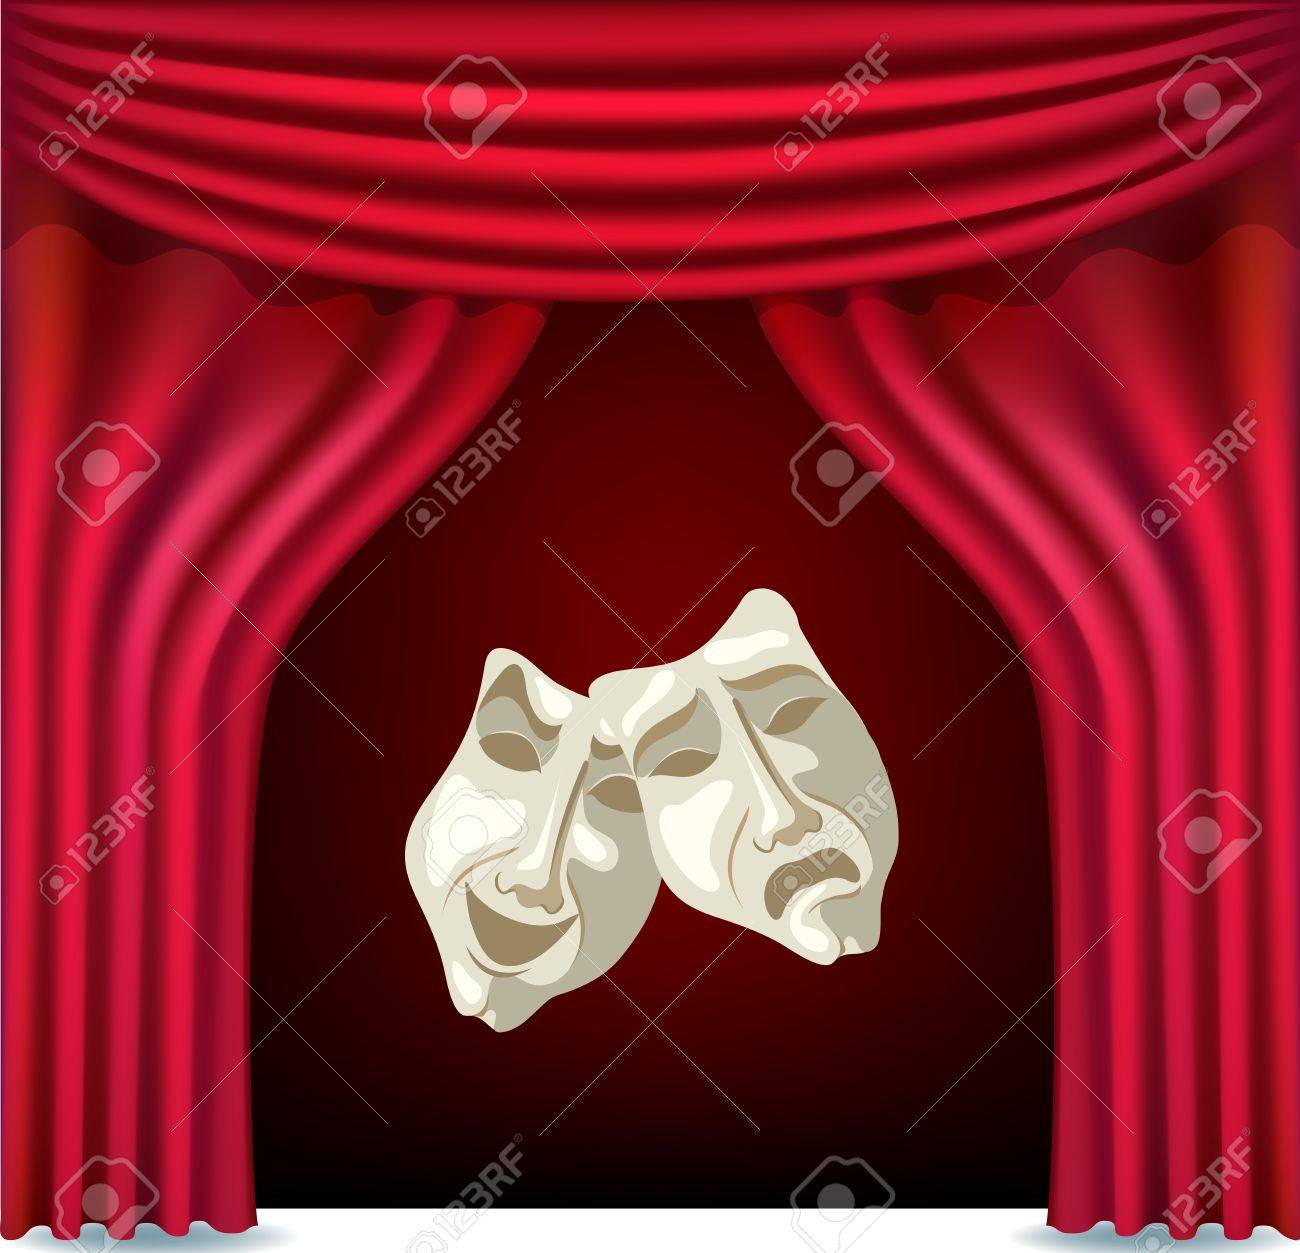 Red opened theater curtain with masks Stock Vector - 17158339